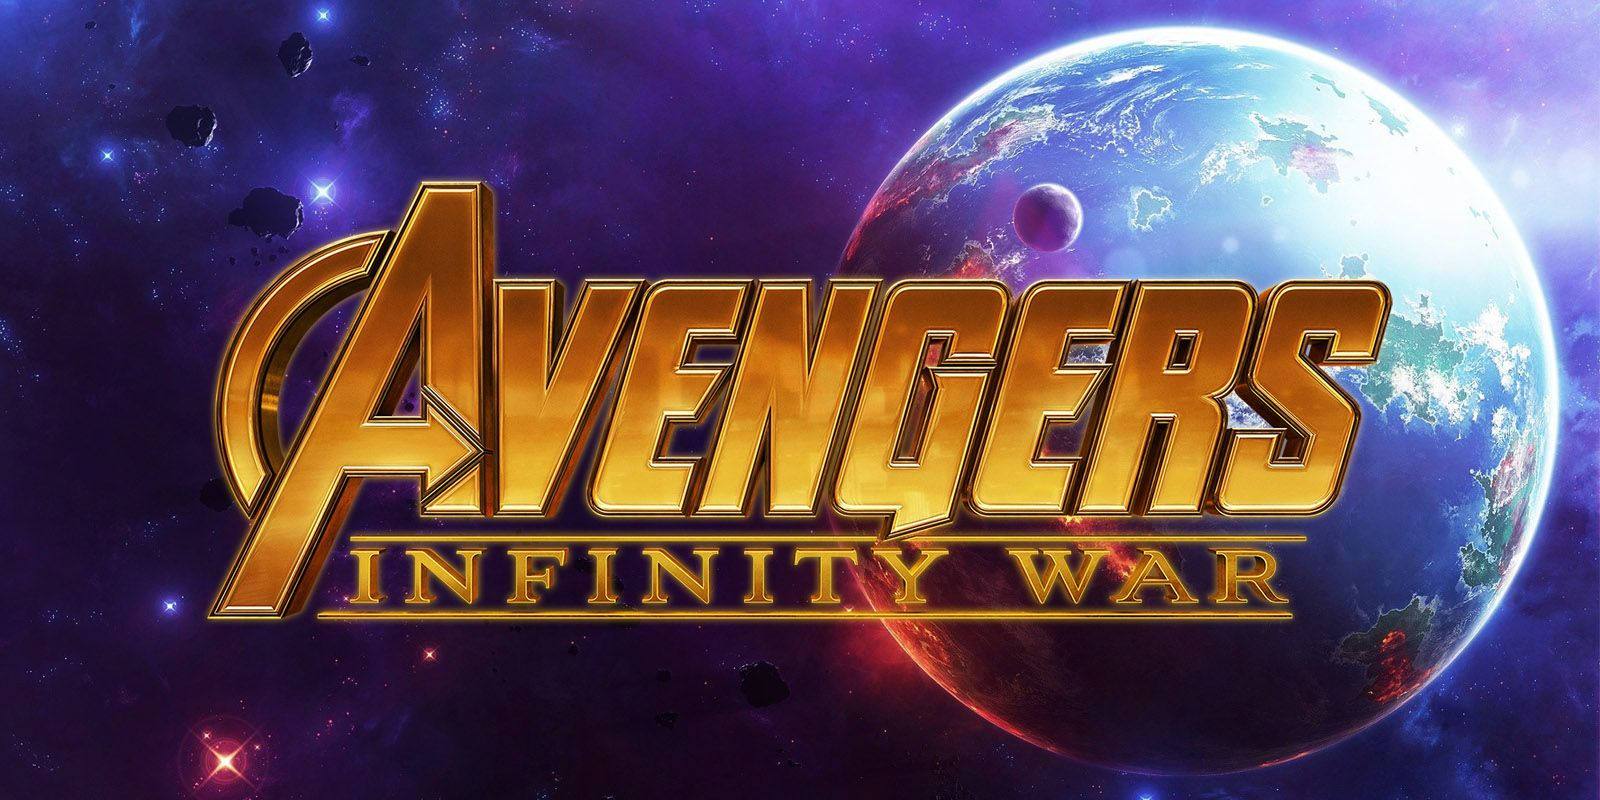 Movie Poster 2019: How Avengers 4 Is And Isn't Infinity War Part 2